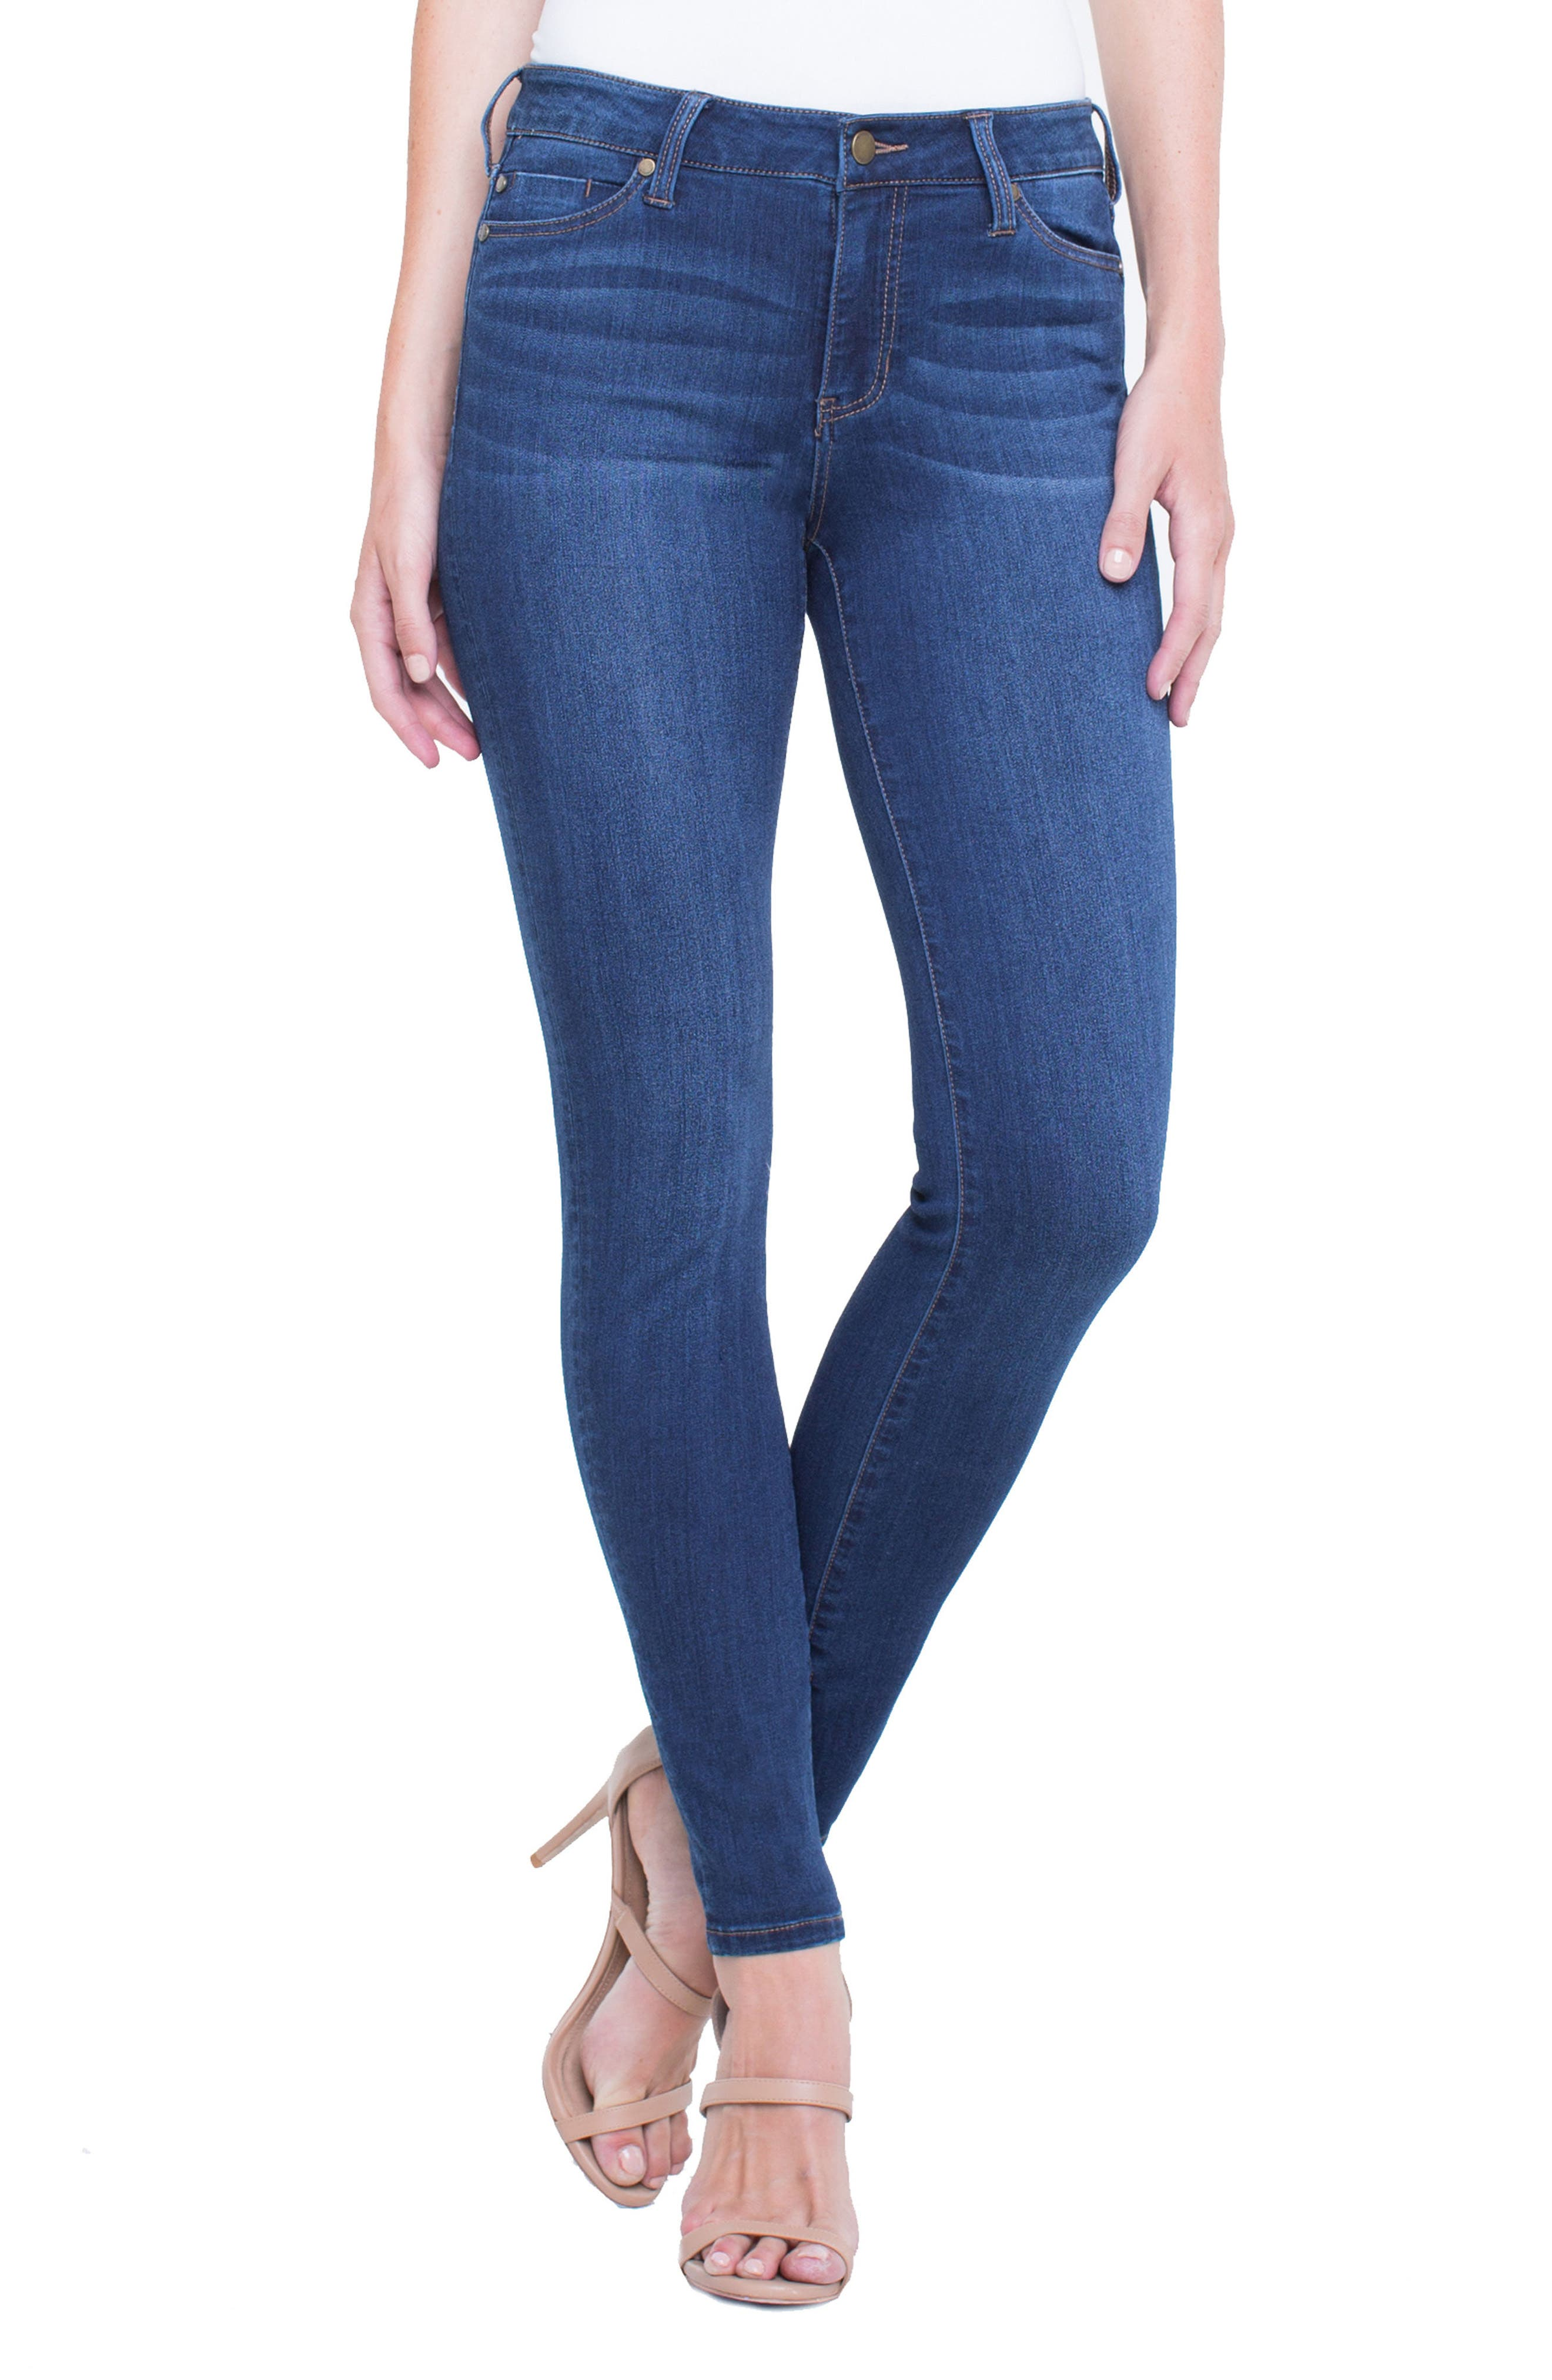 Petite Women's Liverpool Abby Skinny Jeans